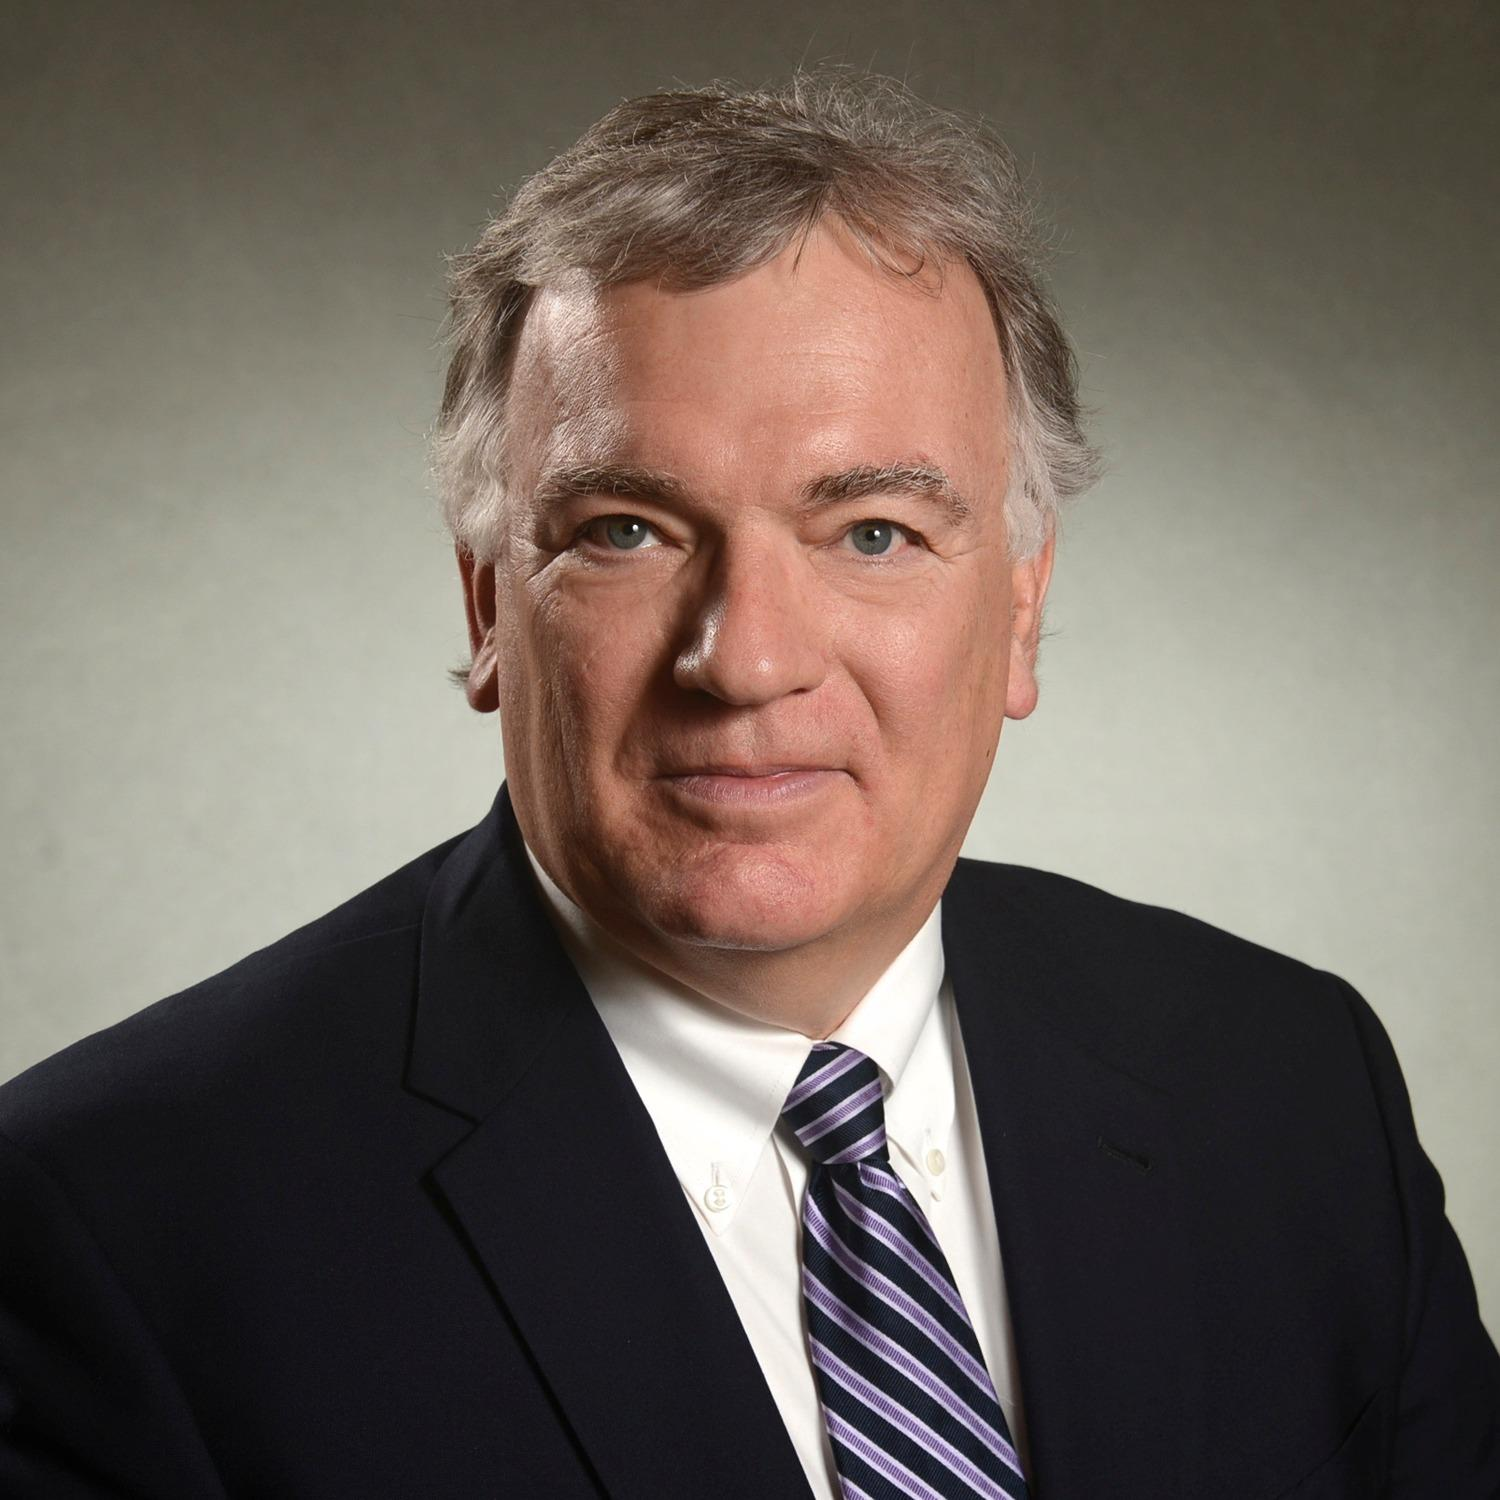 Photo of Paul R Buckley - Morgan Stanley